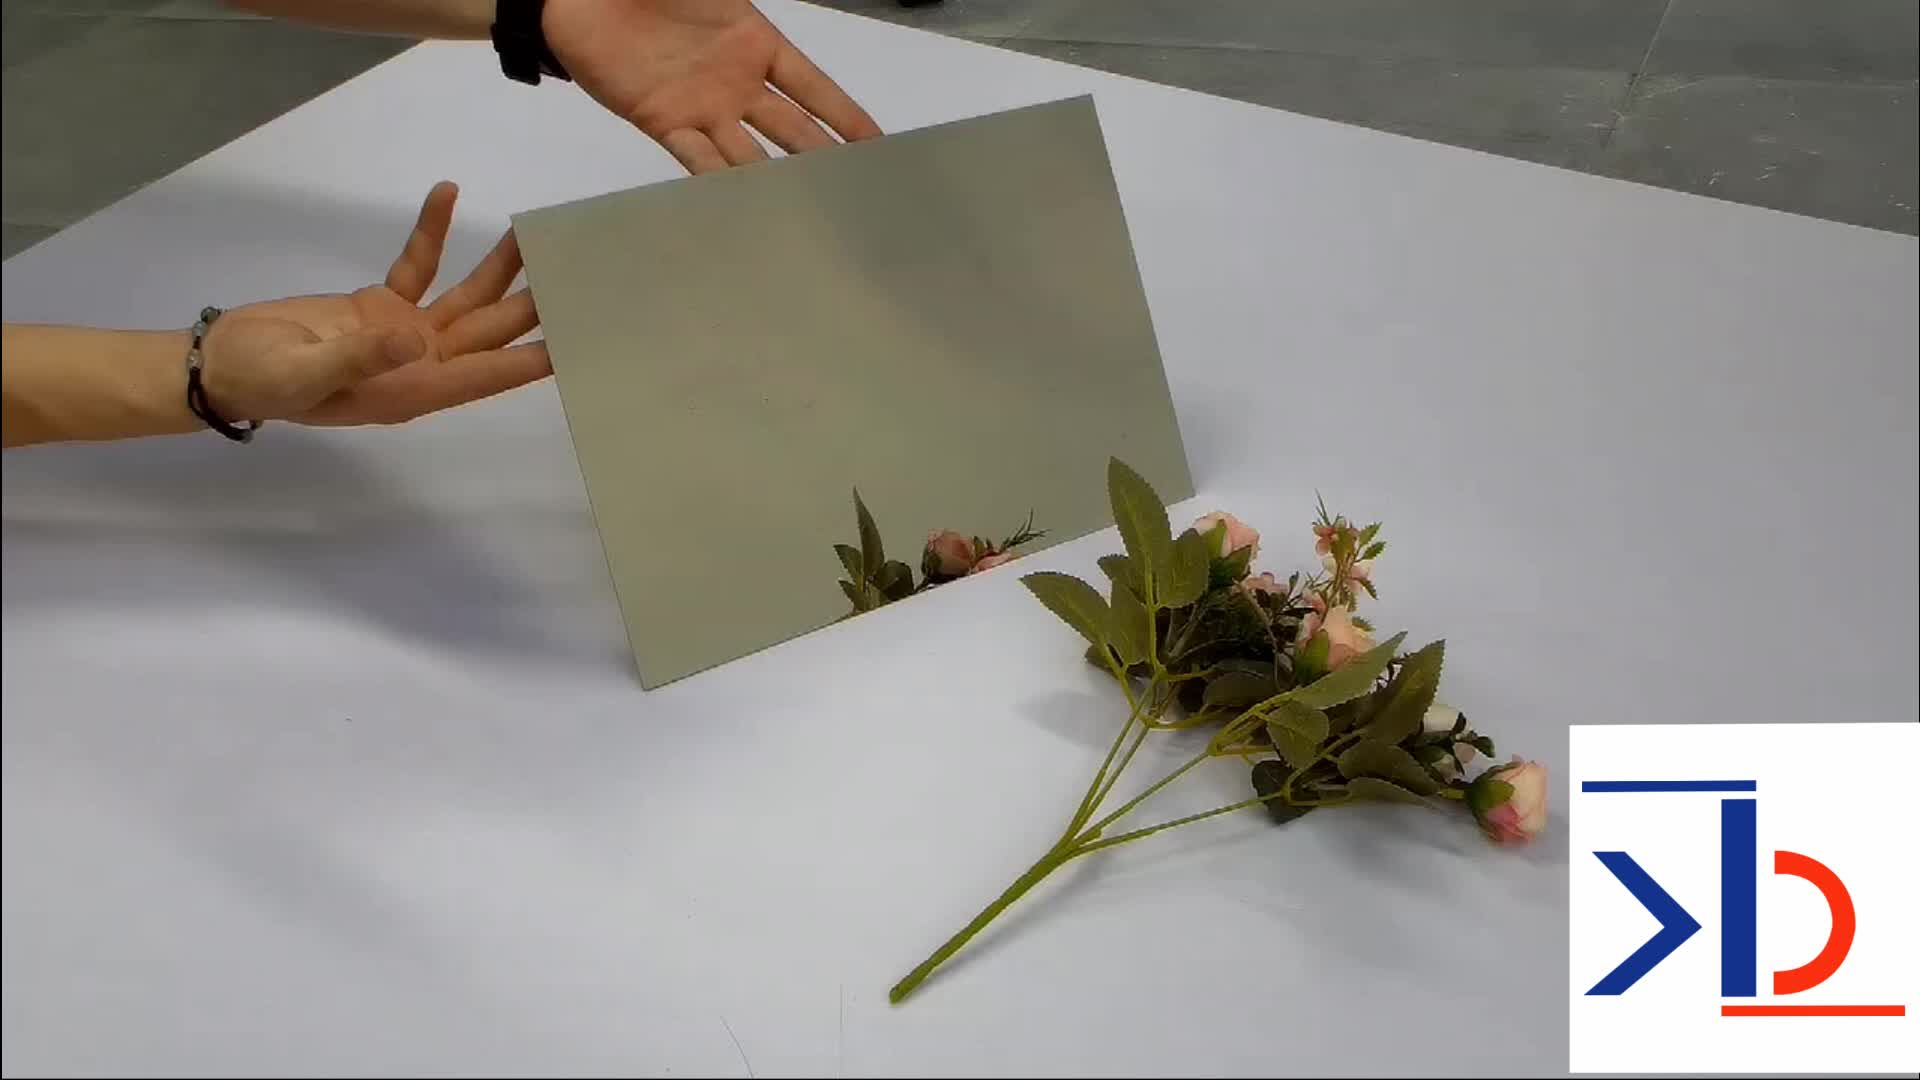 4x8 rose gold mirror brushed stainless steel sheet metal color stainless steel plate 8k mirror finish stainless steel sheets